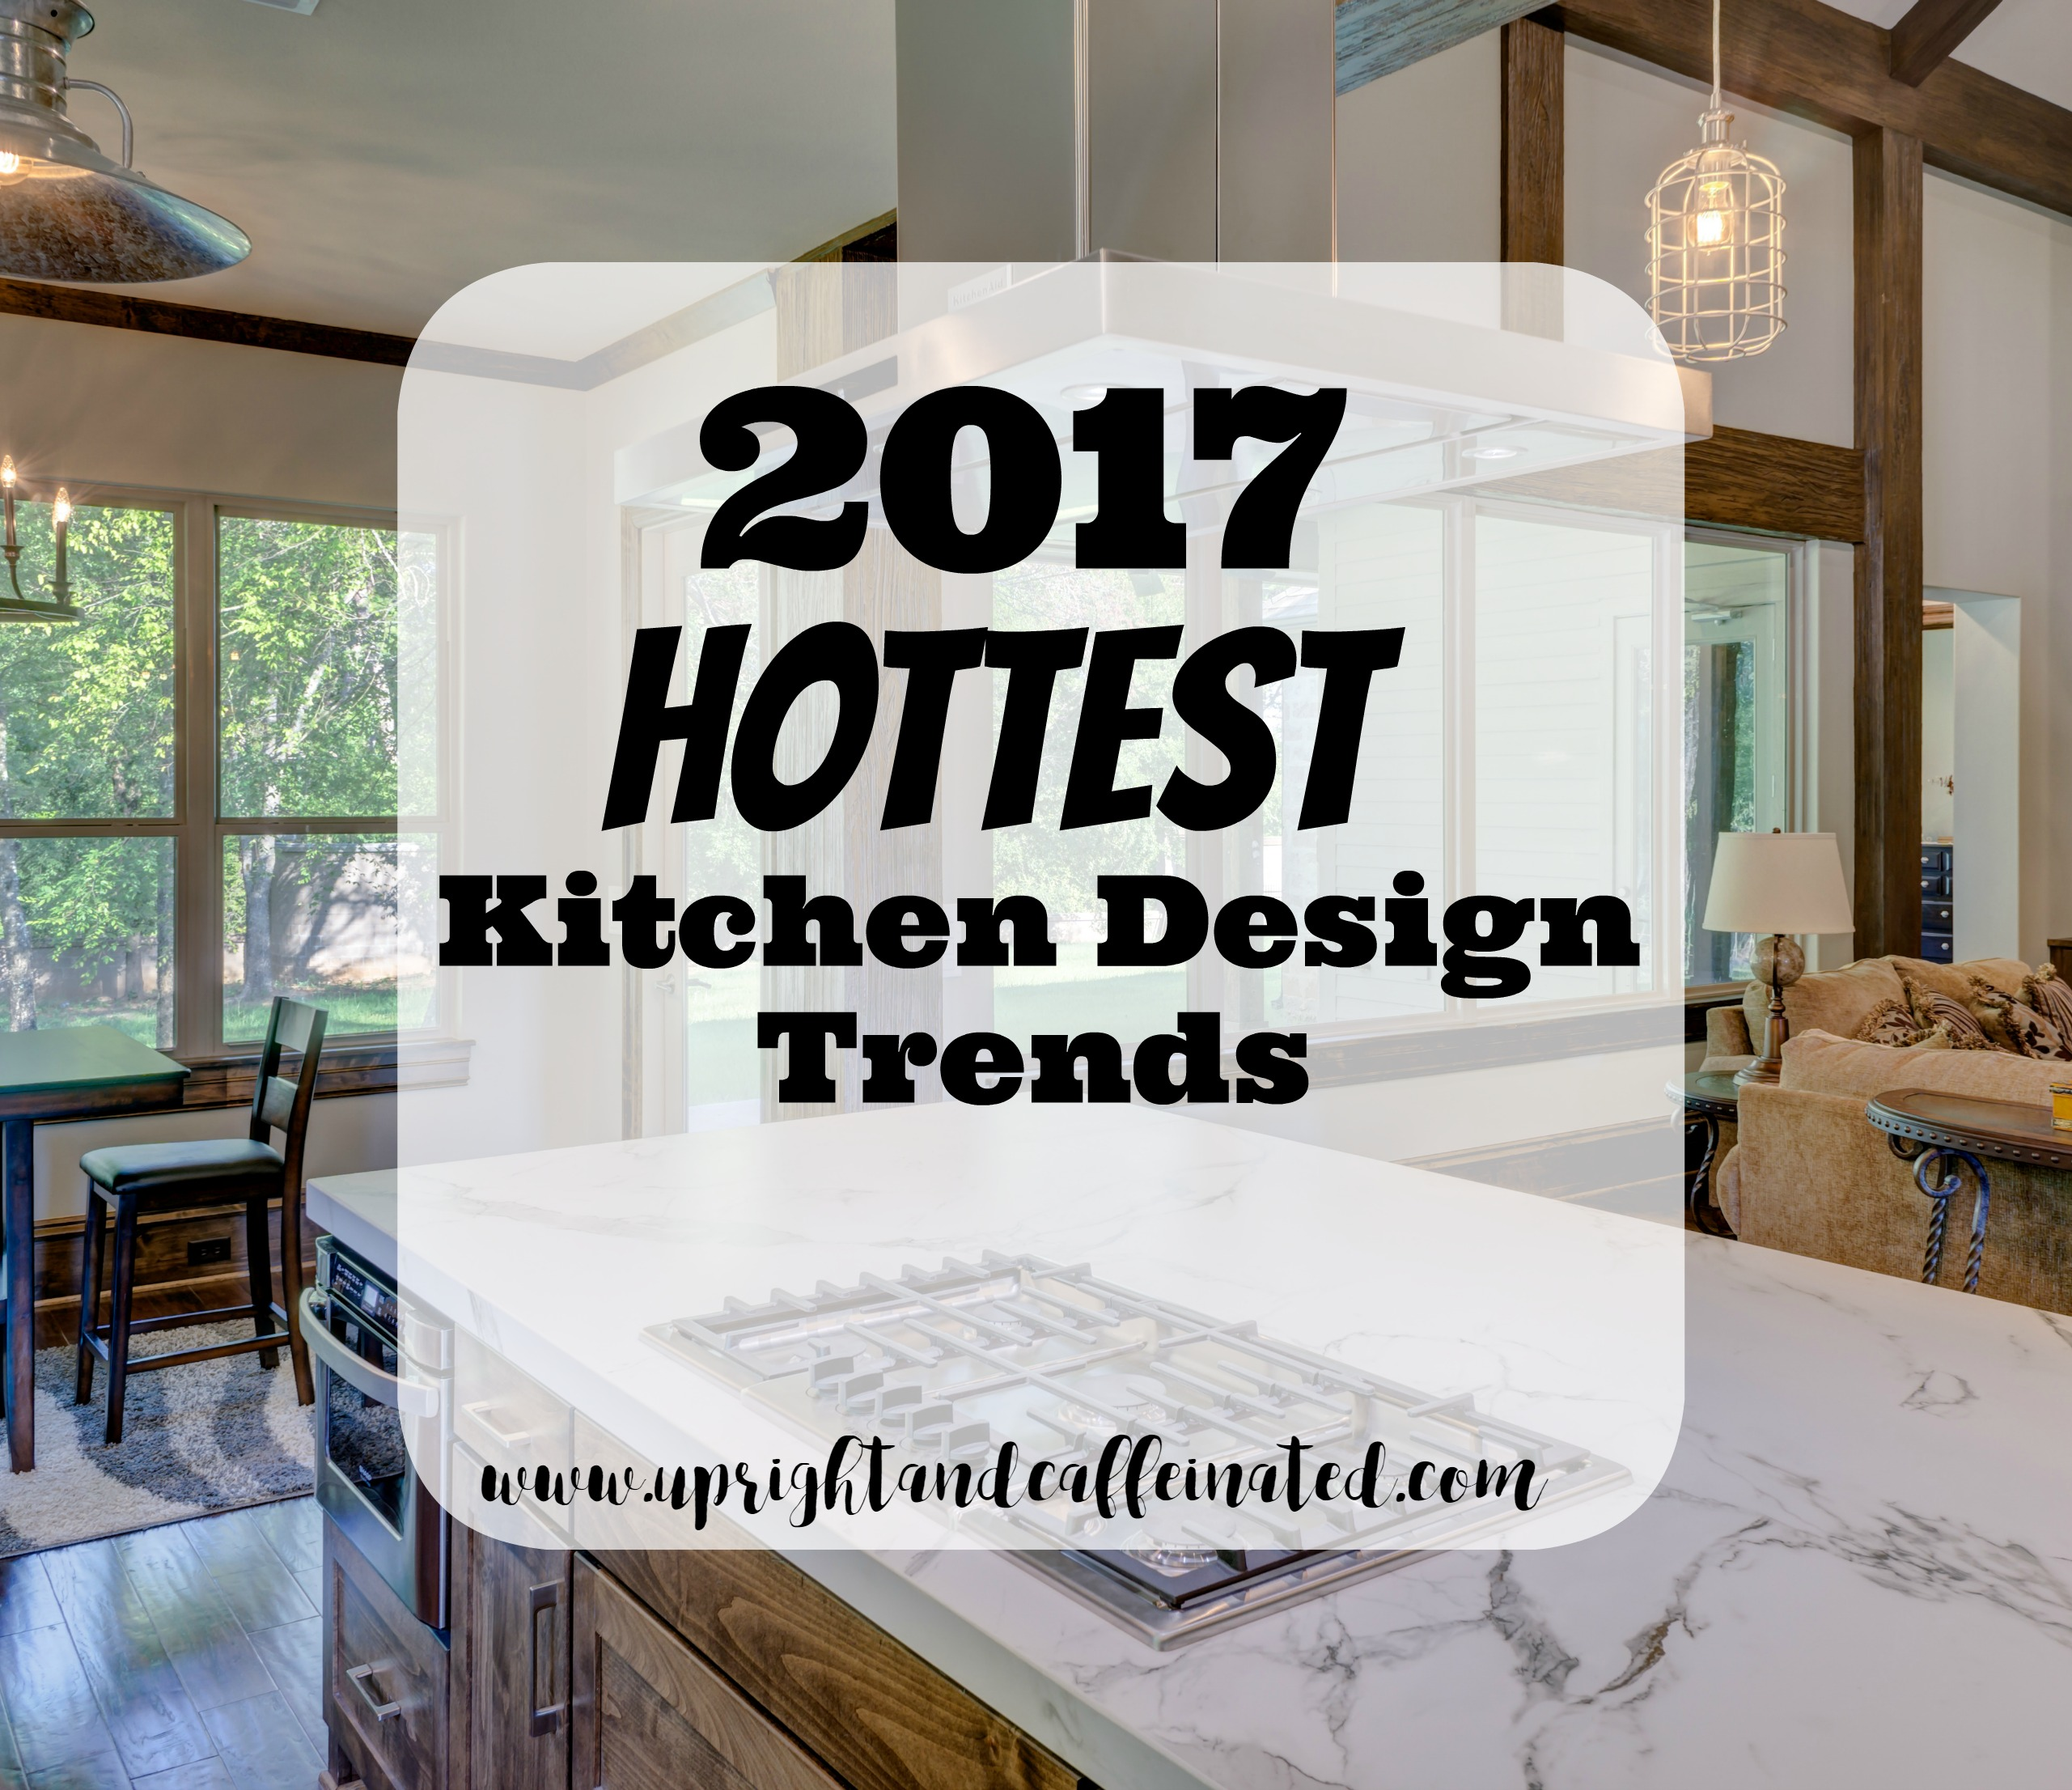 Hottest Kitchen Trends Upright And Caffeinated - Kitchen countertop trends 2017